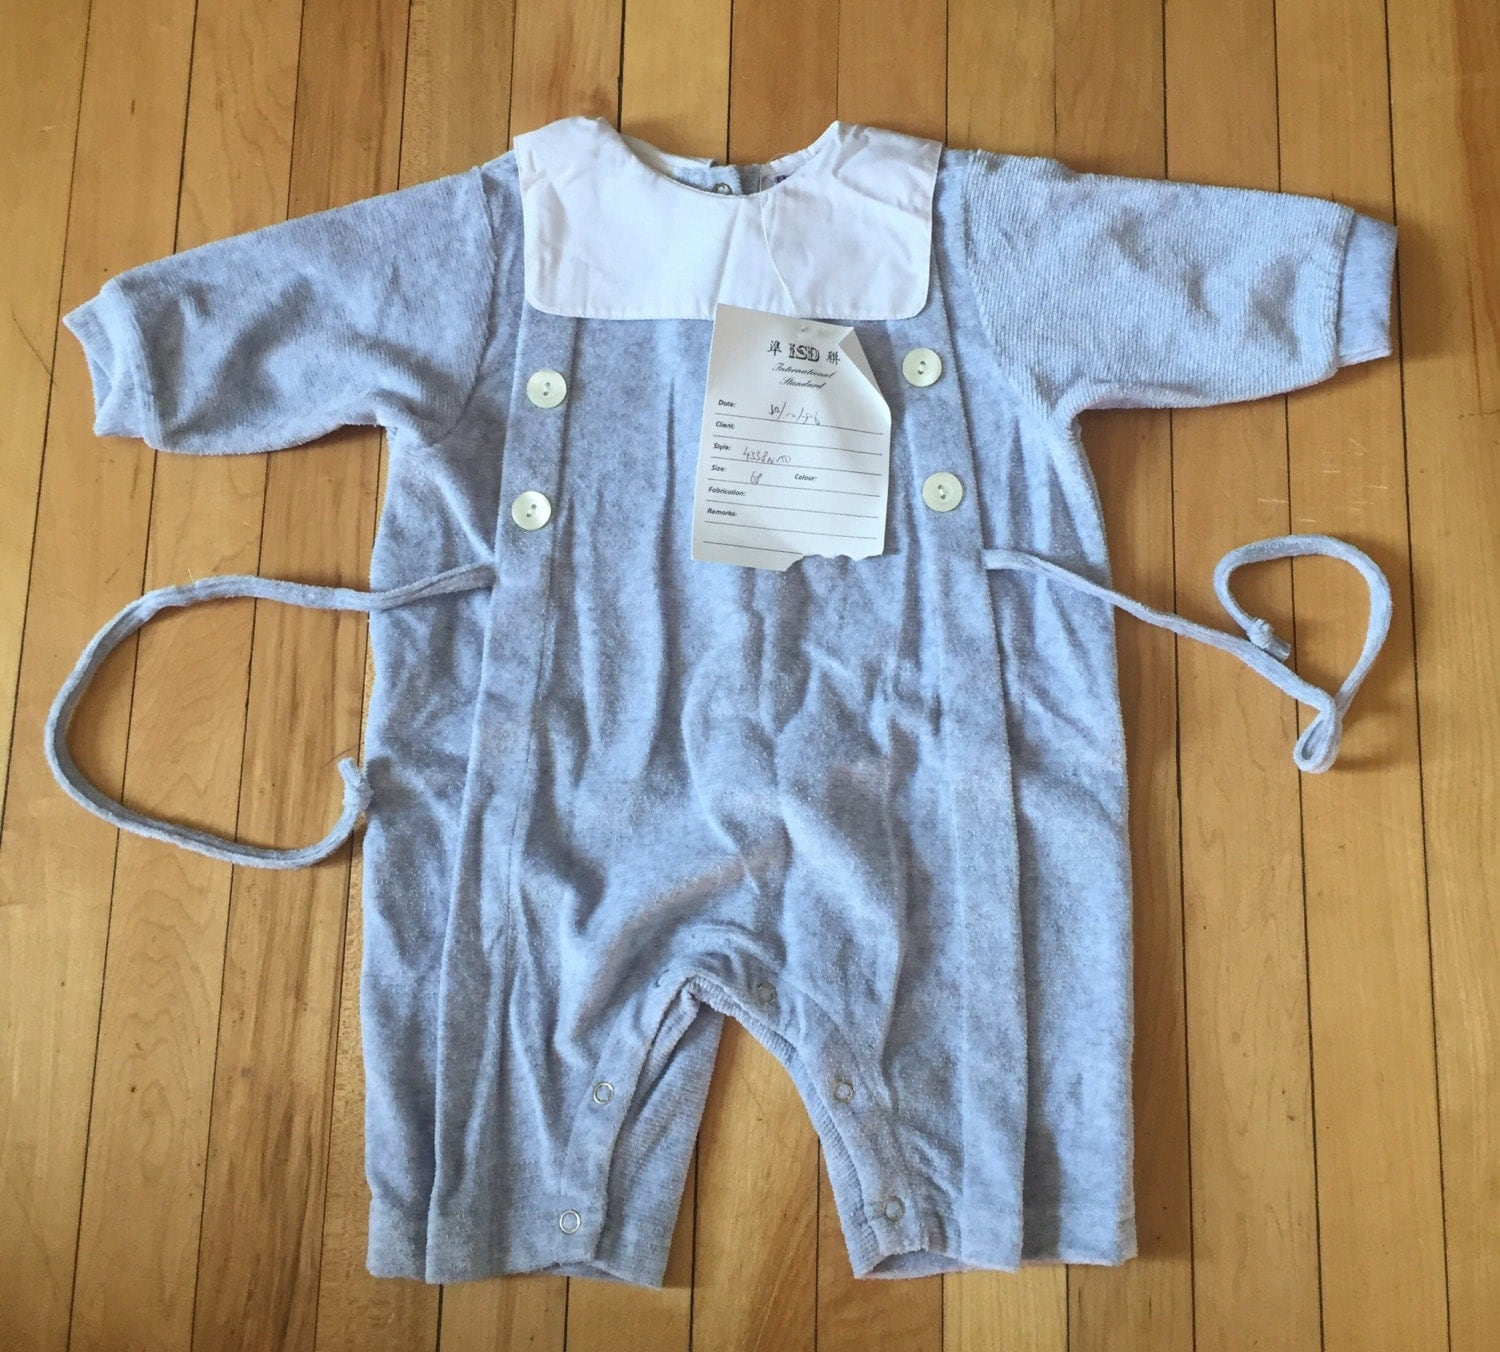 74ee4cd4b Vintage 1980s Baby Infant Boys Blue One Piece Romper Outfit! Size 6 ...